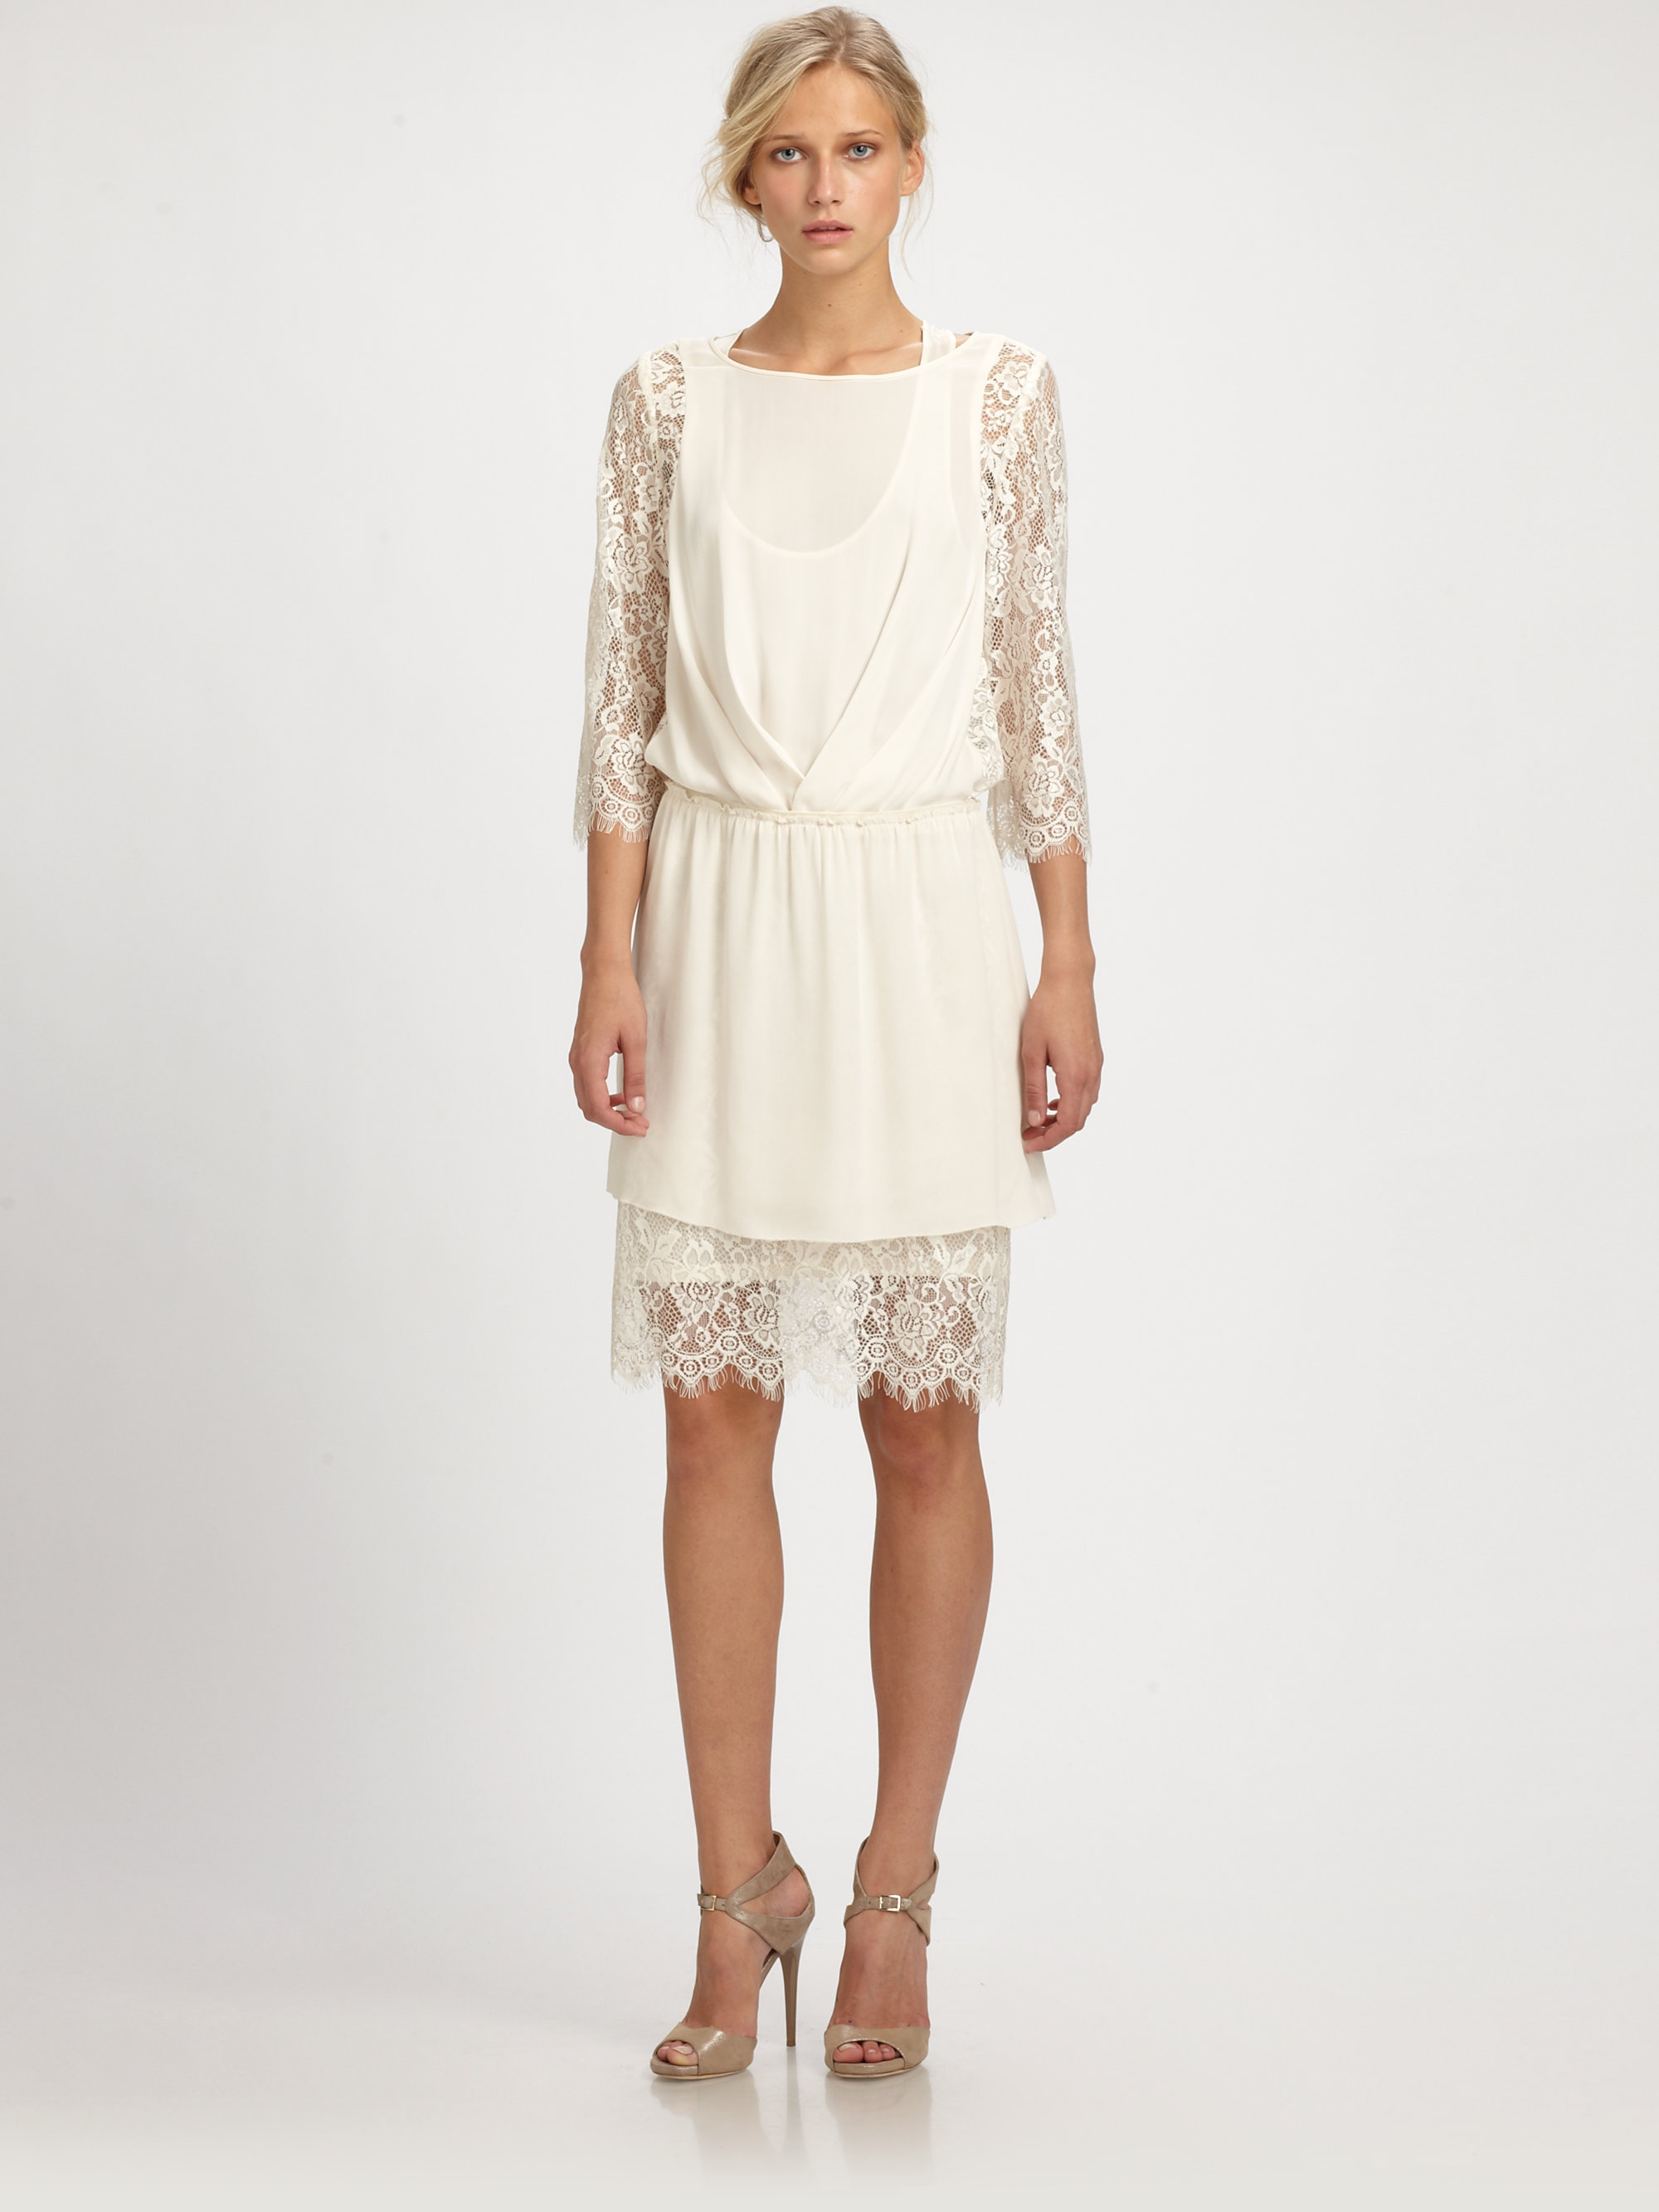 ddcc2a8296a28 Lyst - By Malene Birger Silk Lace Dress in White